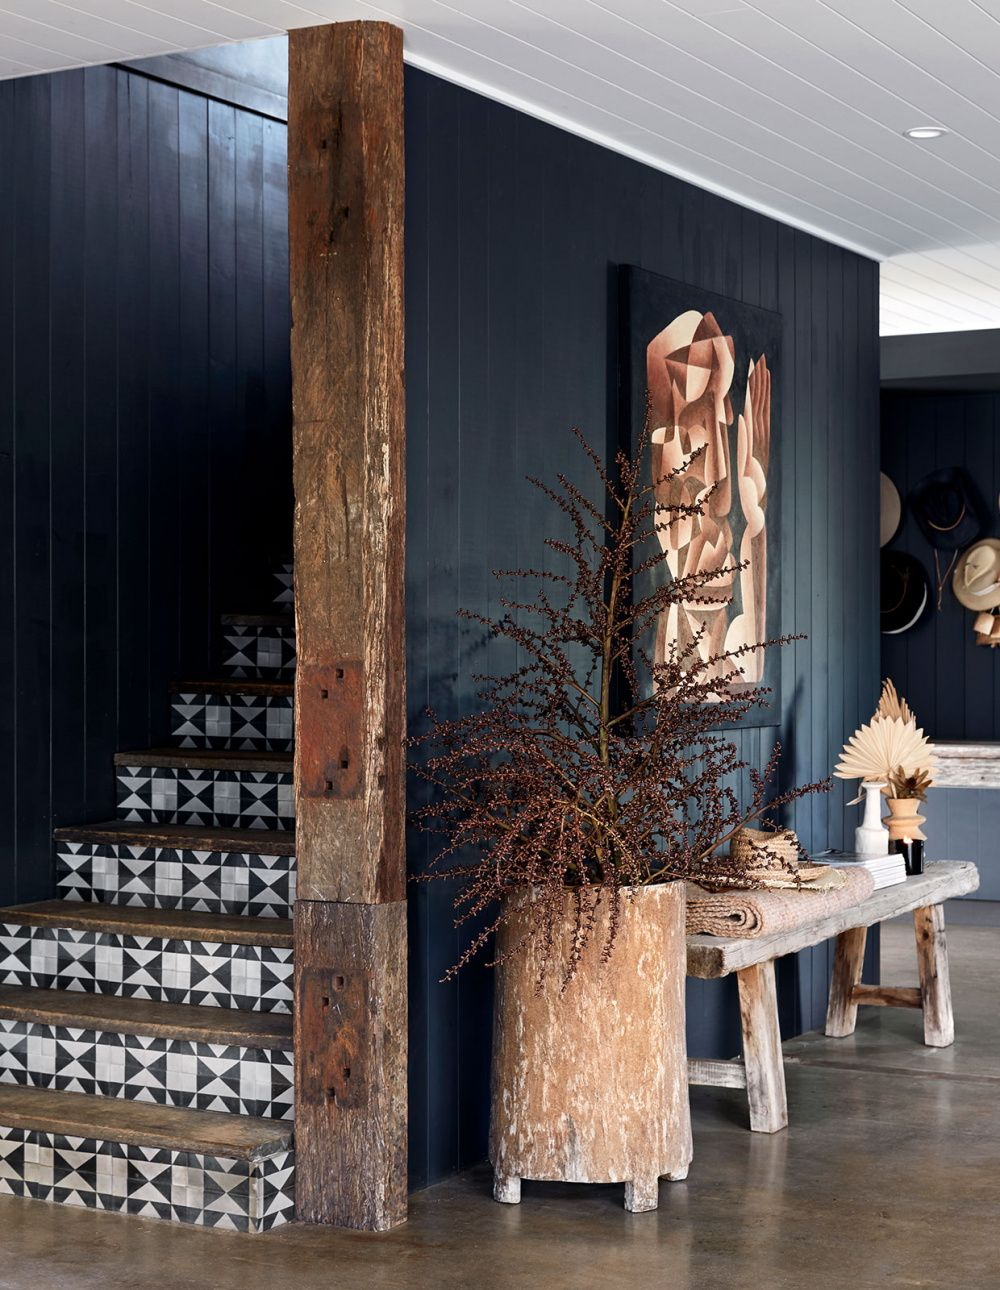 The Owners Of The Atlantic Hotel In Byron Bay Share Their Home.